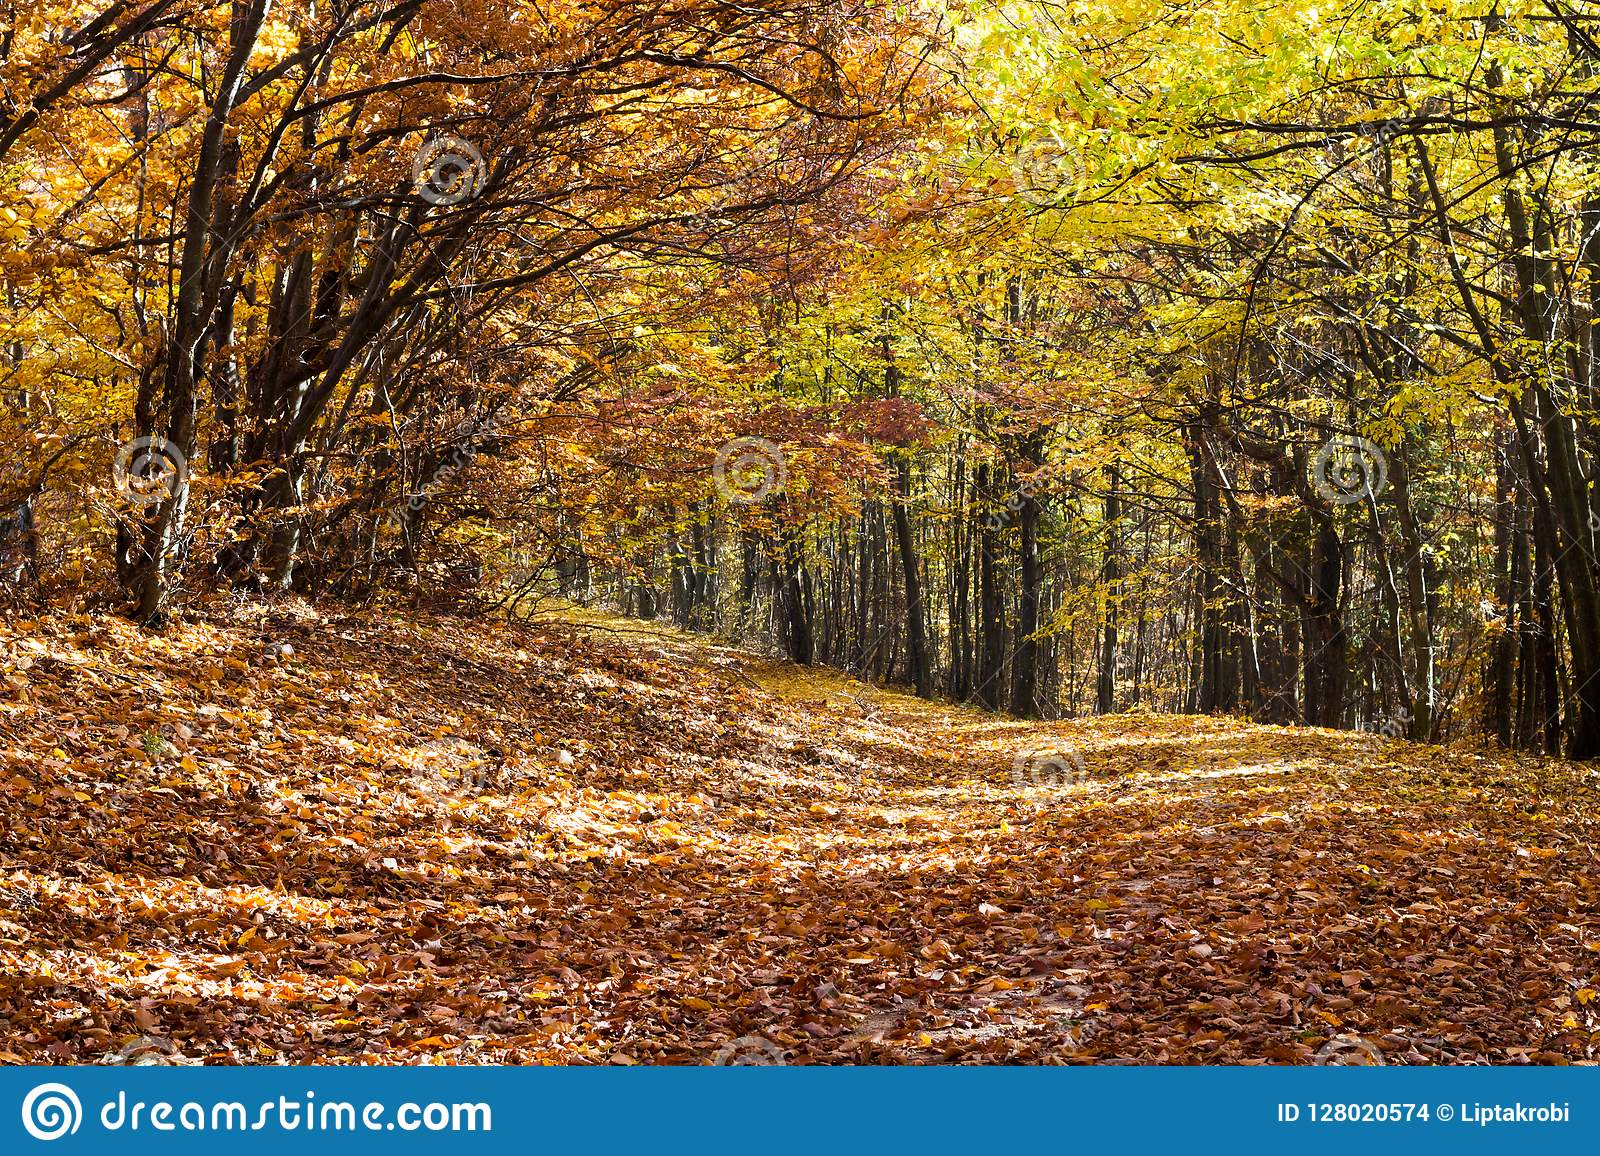 Autumn forest, trees and the leaves were falling